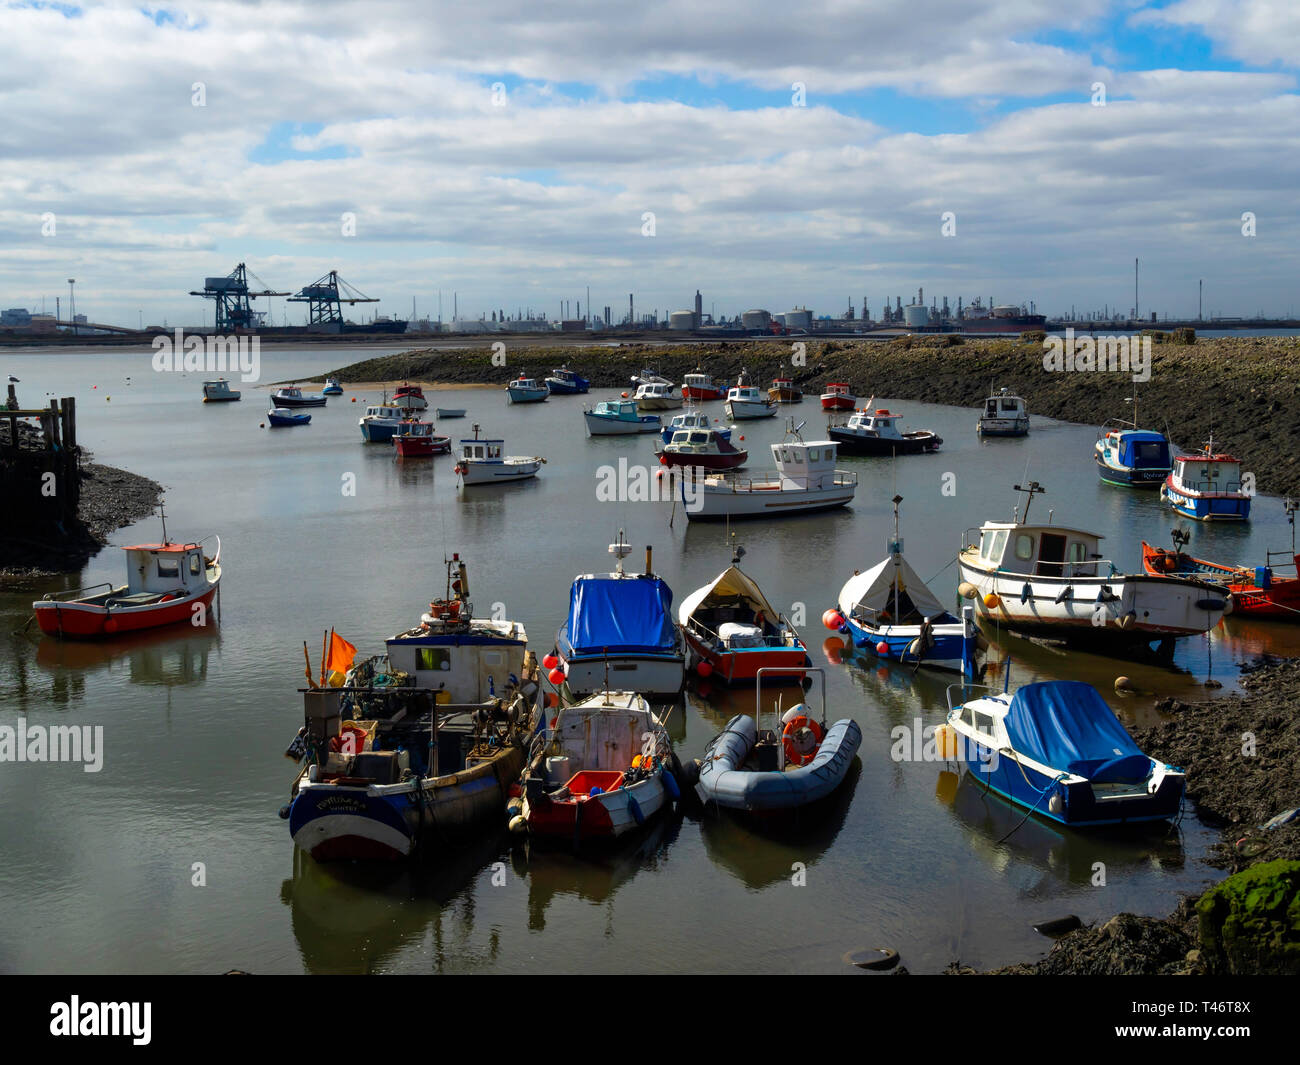 Fishing and pleasure boats in Paddys Hole Harbour, Teesmouth, Redcar Cleveland UK Stock Photo